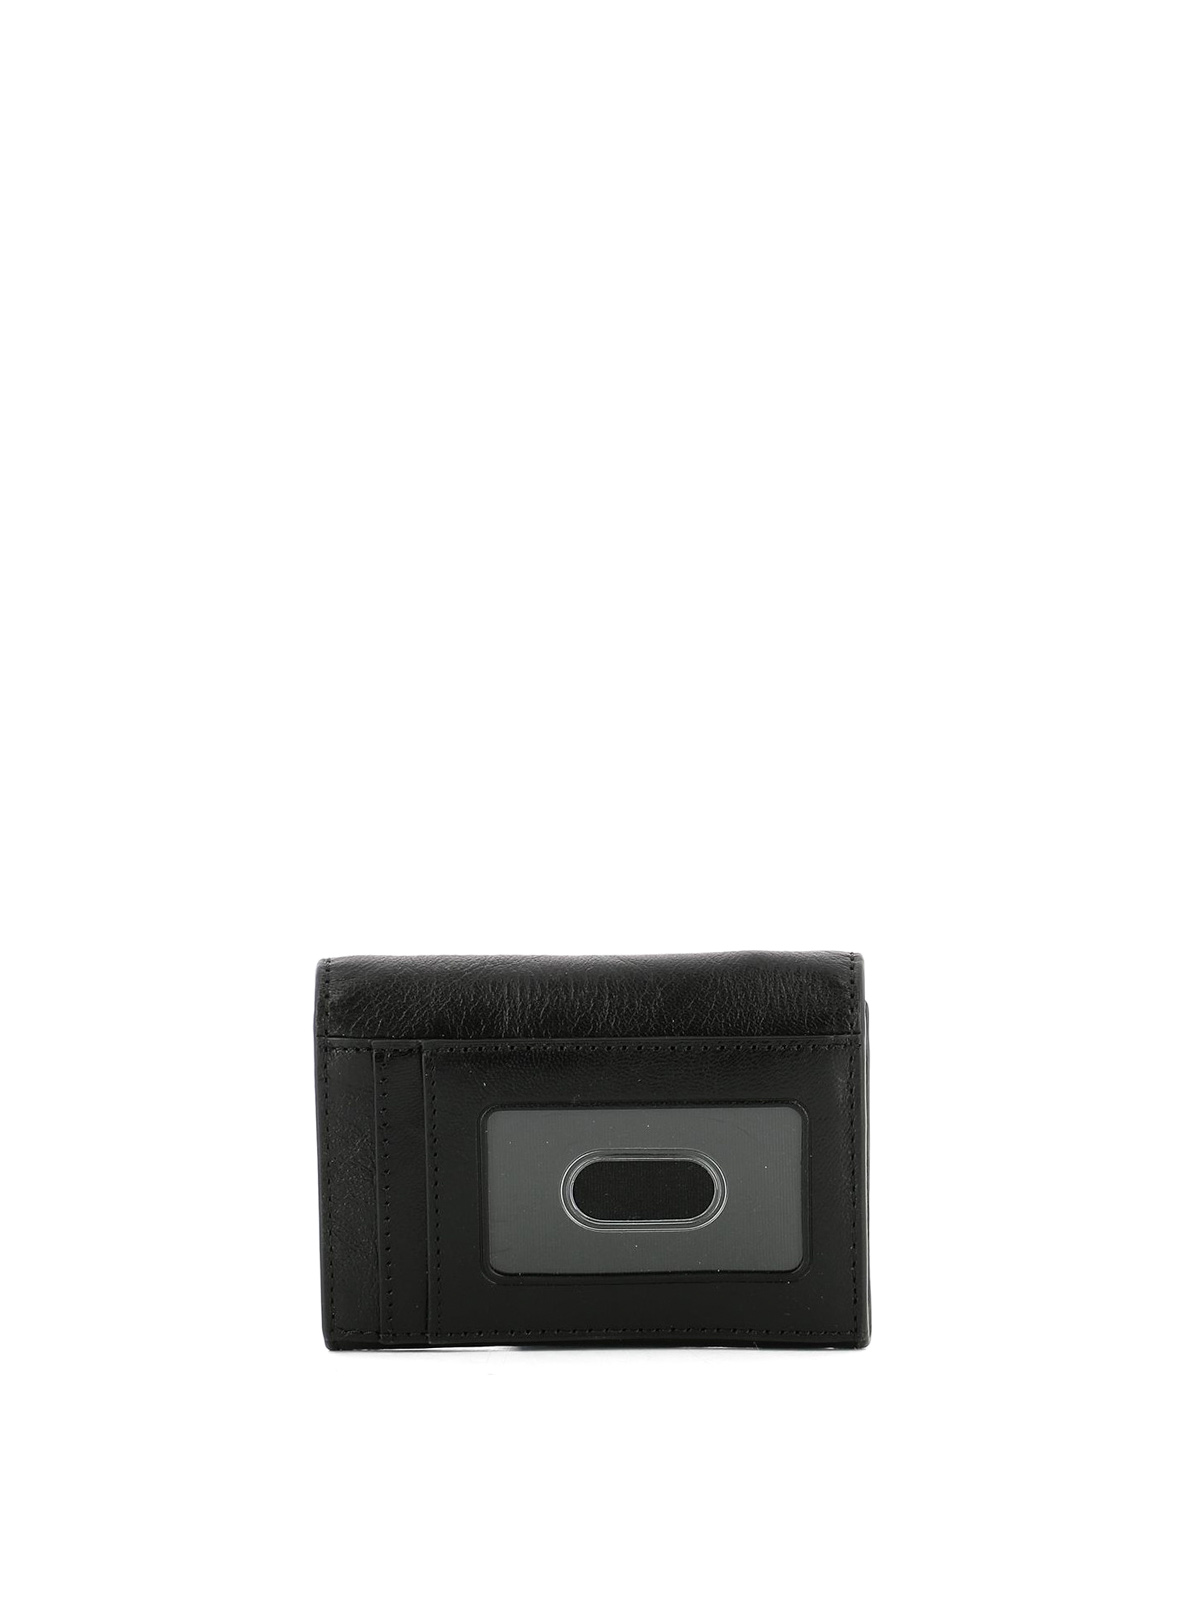 Gold-tone logo leather card holder by Marc Jacobs - wallets & purses ...